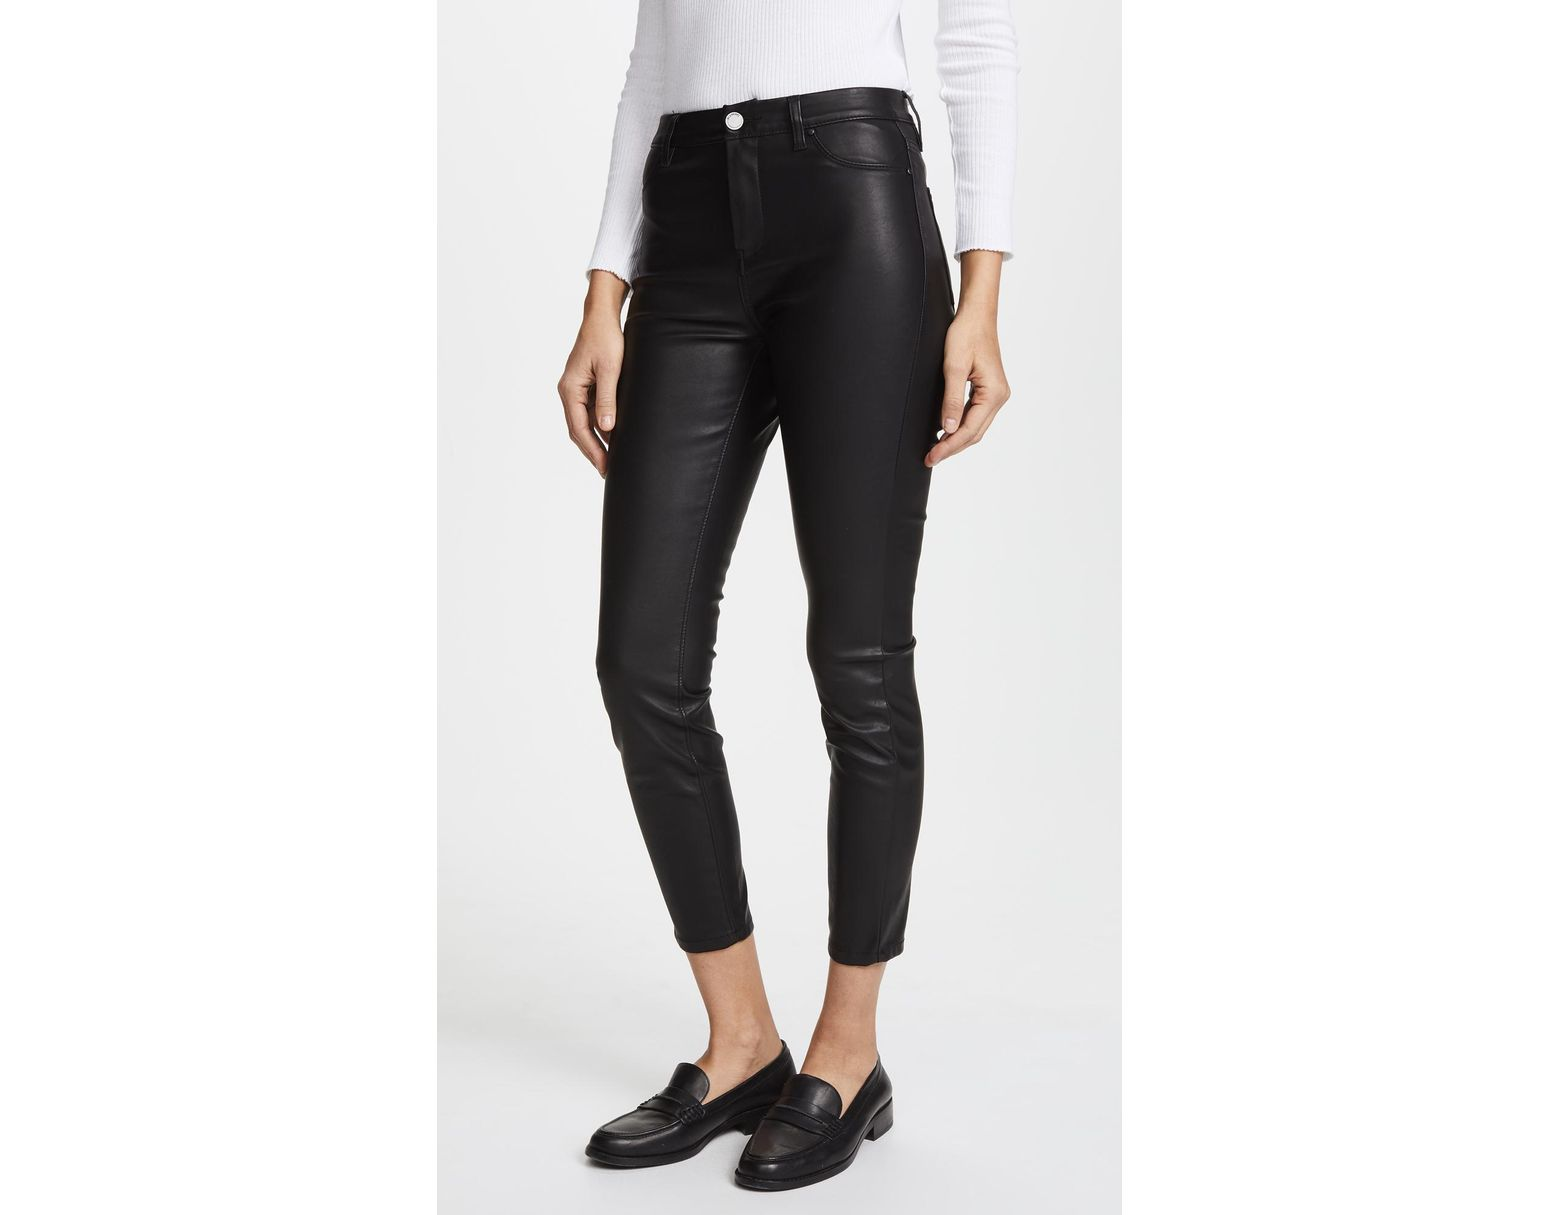 7c0e05b2afc64 Blank NYC The Principle Mid Rise Vegan Leather Skinny Pants in Black - Lyst